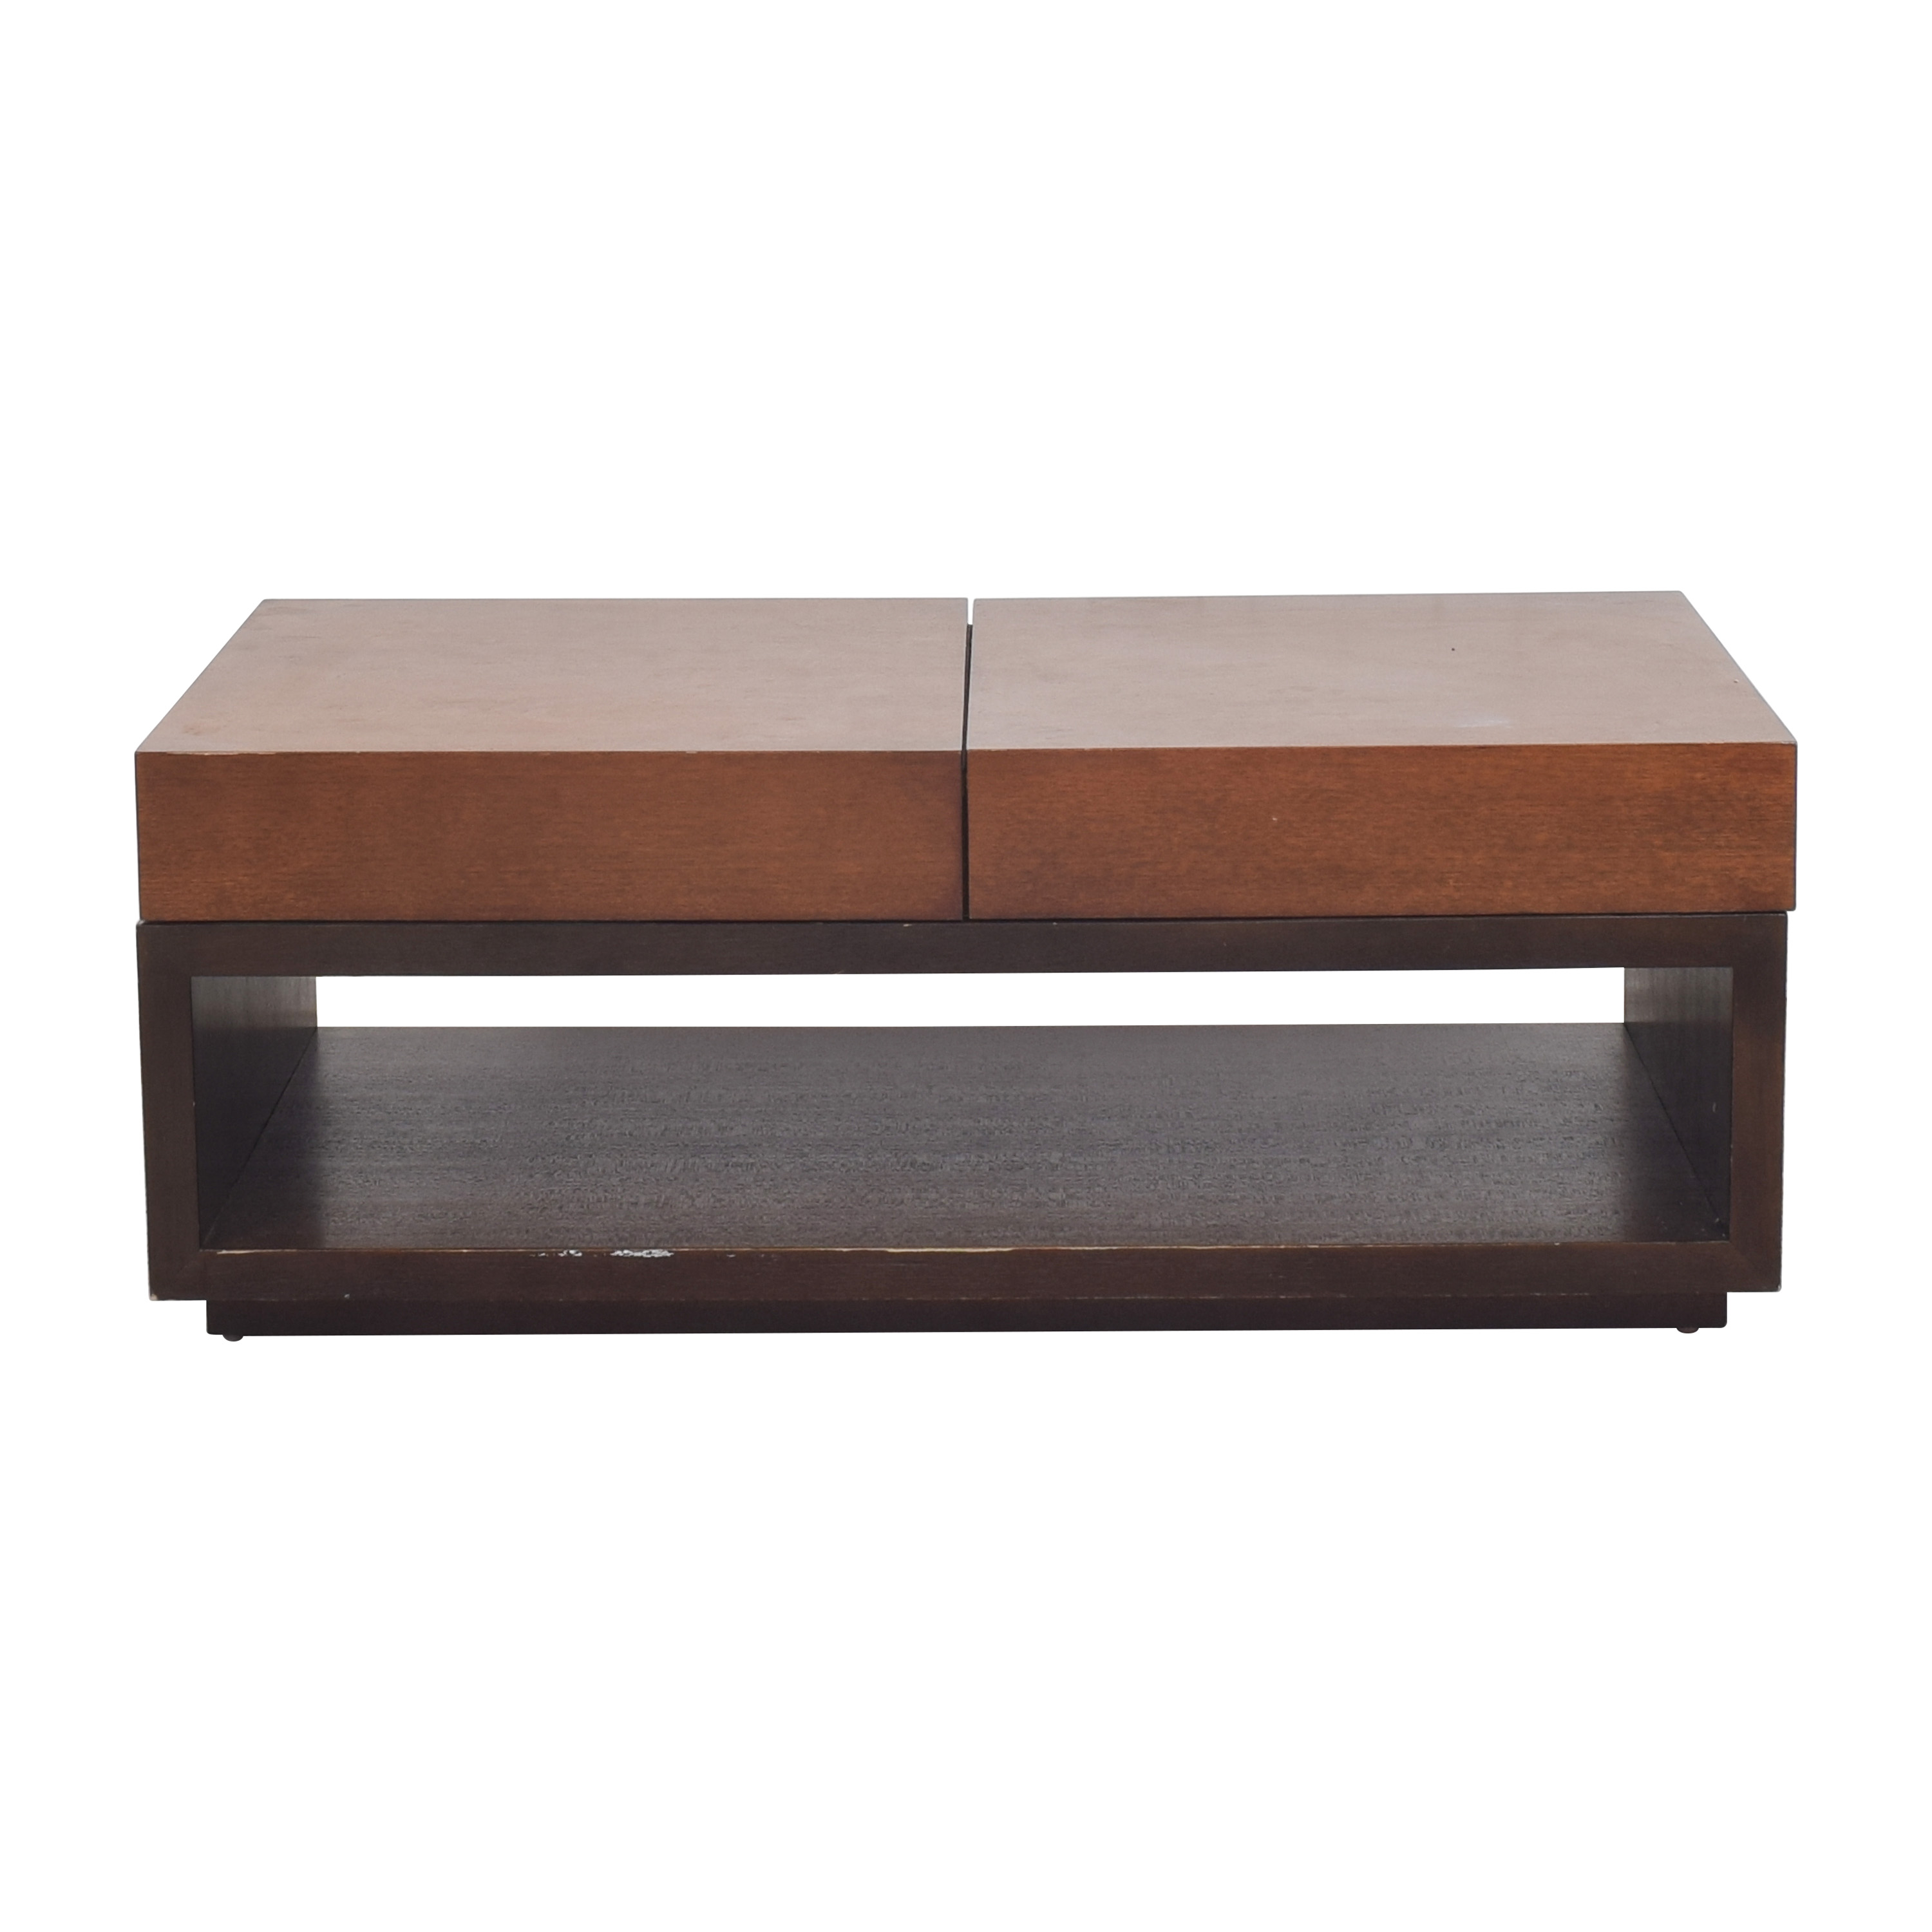 shop Crate & Barrel Trax Coffee Table Crate & Barrel Tables